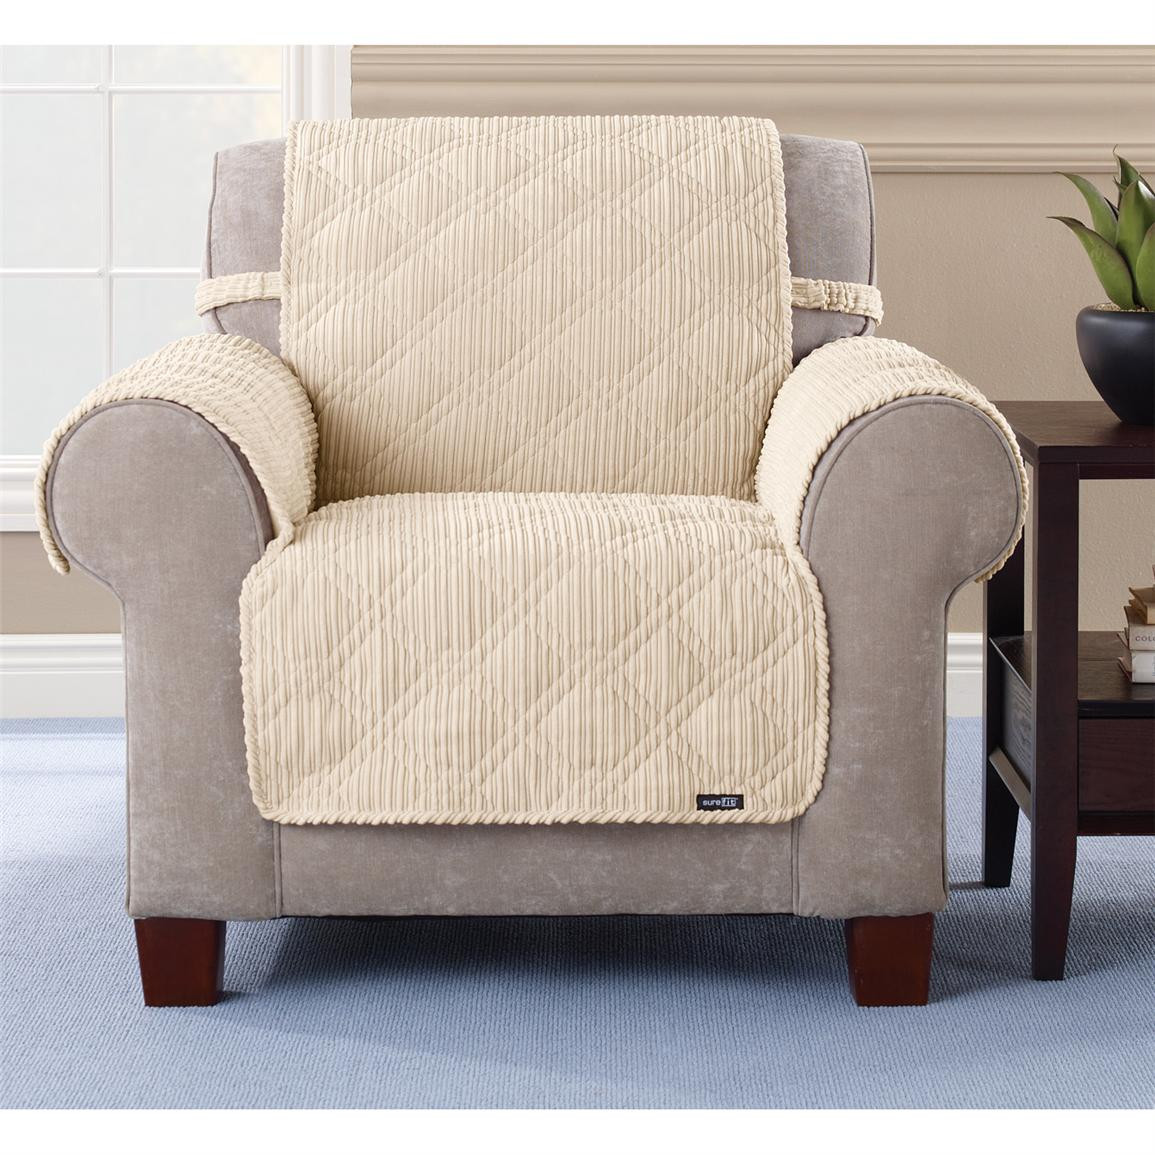 Best ideas about Sure Fit Chair Covers . Save or Pin Sure Fit Quilted Corduroy Chair Pet Cover Now.